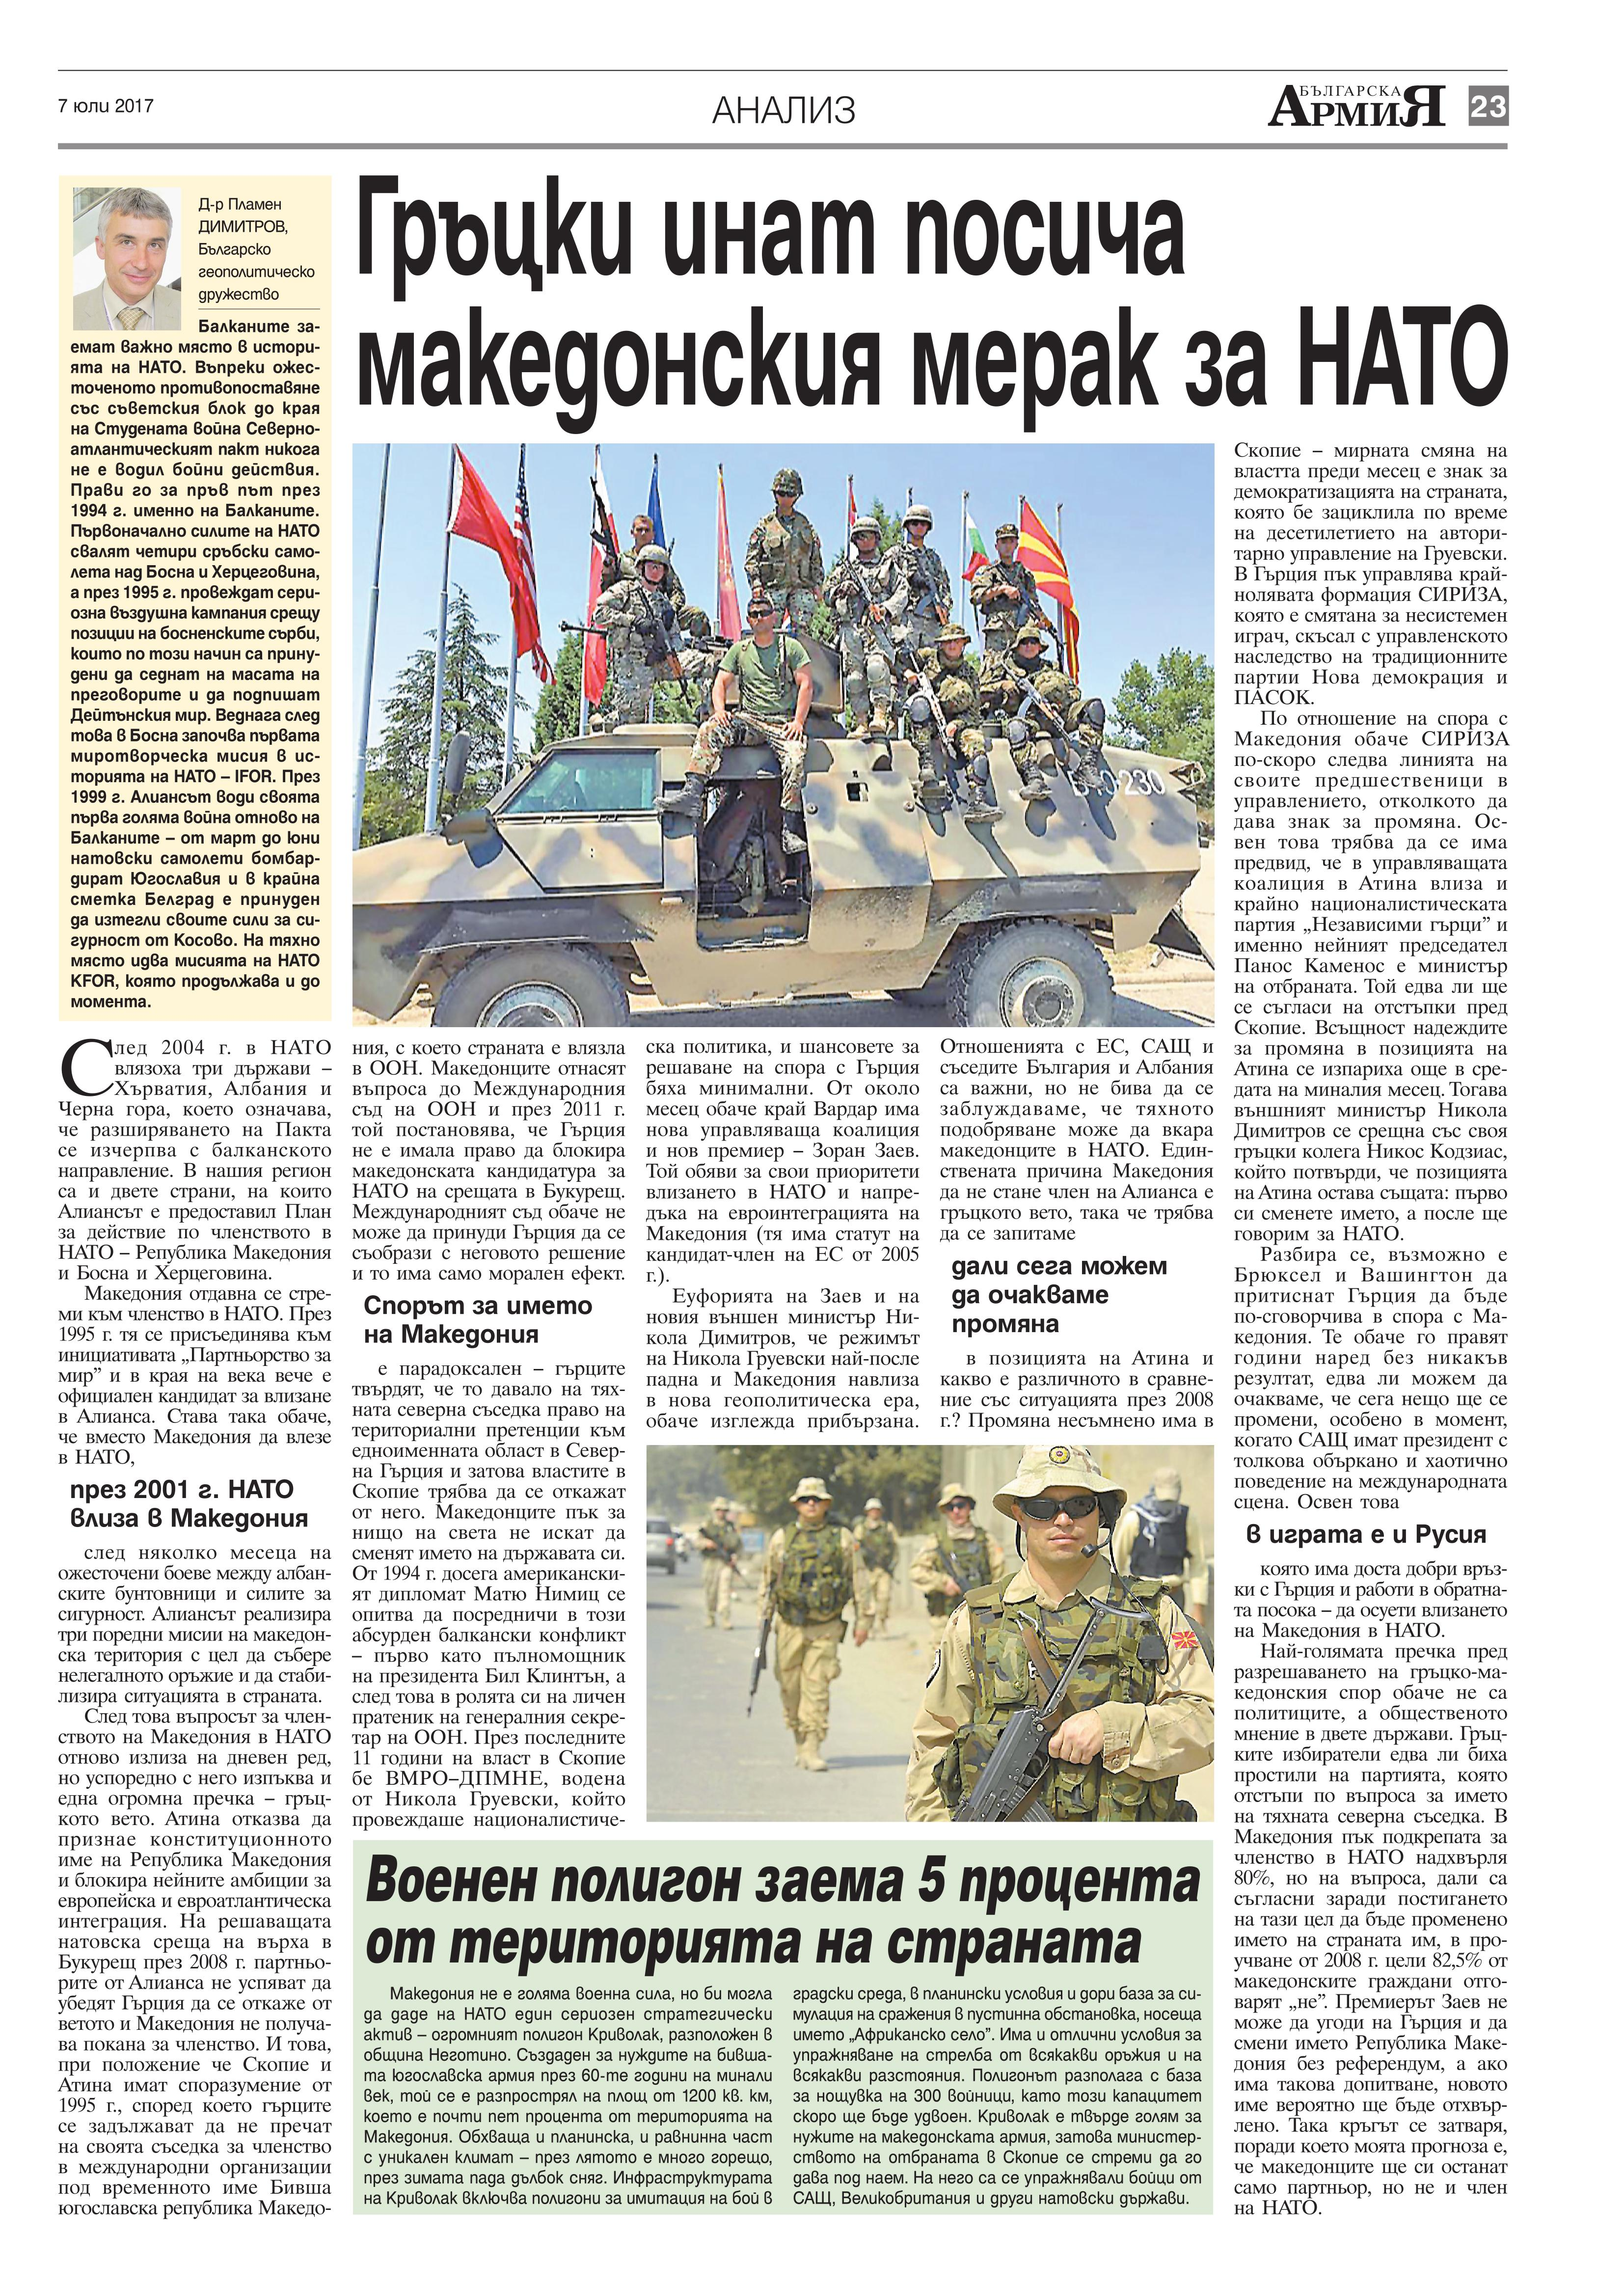 https://www.armymedia.bg/wp-content/uploads/2015/06/23.page1_-24.jpg